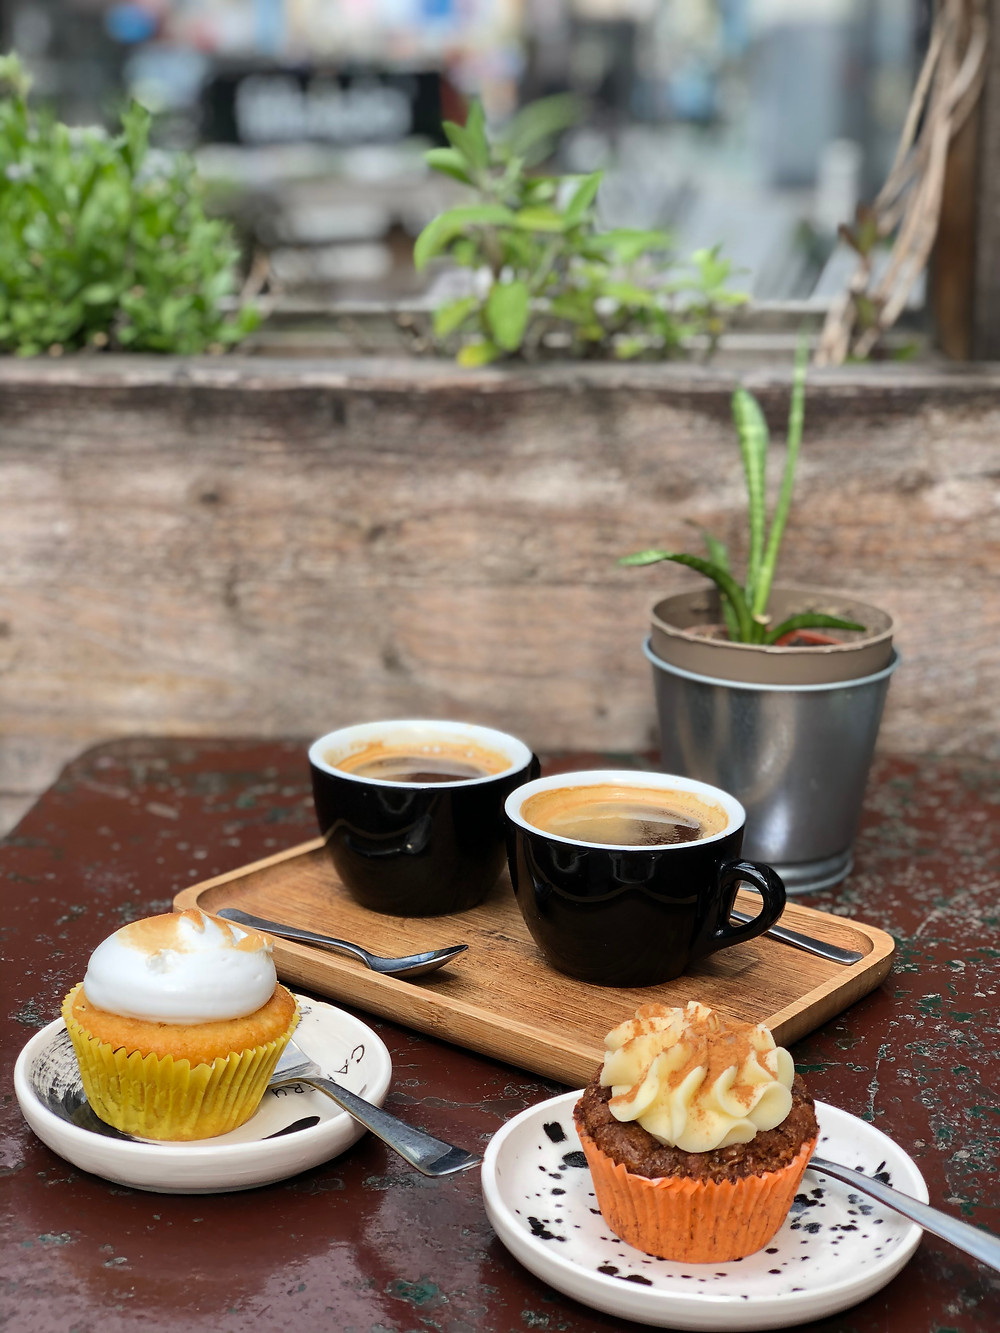 Normo Coffee and cupcakes at Barraf in Lier